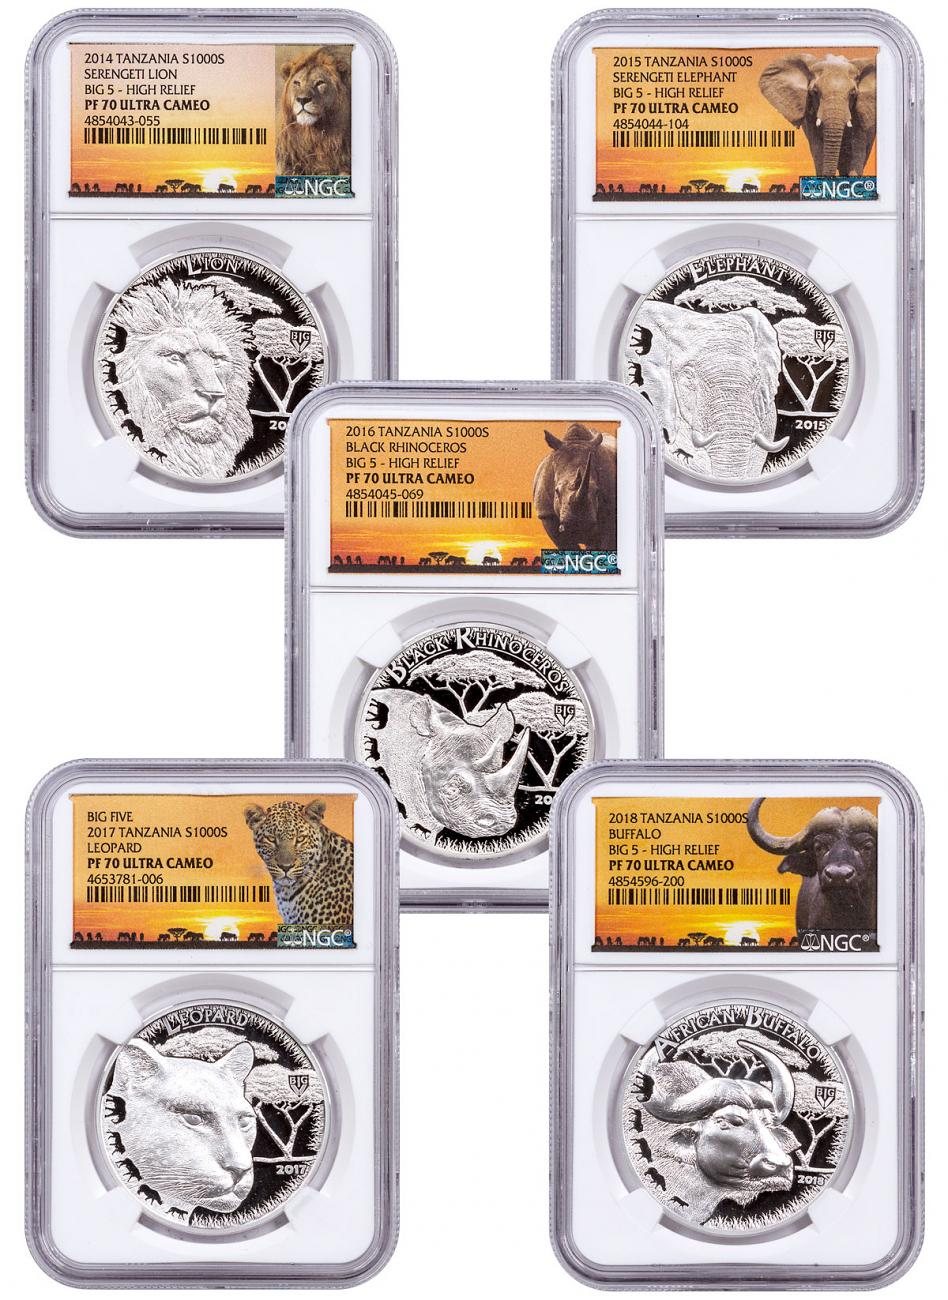 2014-2018 Tanzania Big 5 - 5-Piece Set High Relief 1 oz Silver Proof Coin NGC PF70 UC Exclusive Serengeti Label